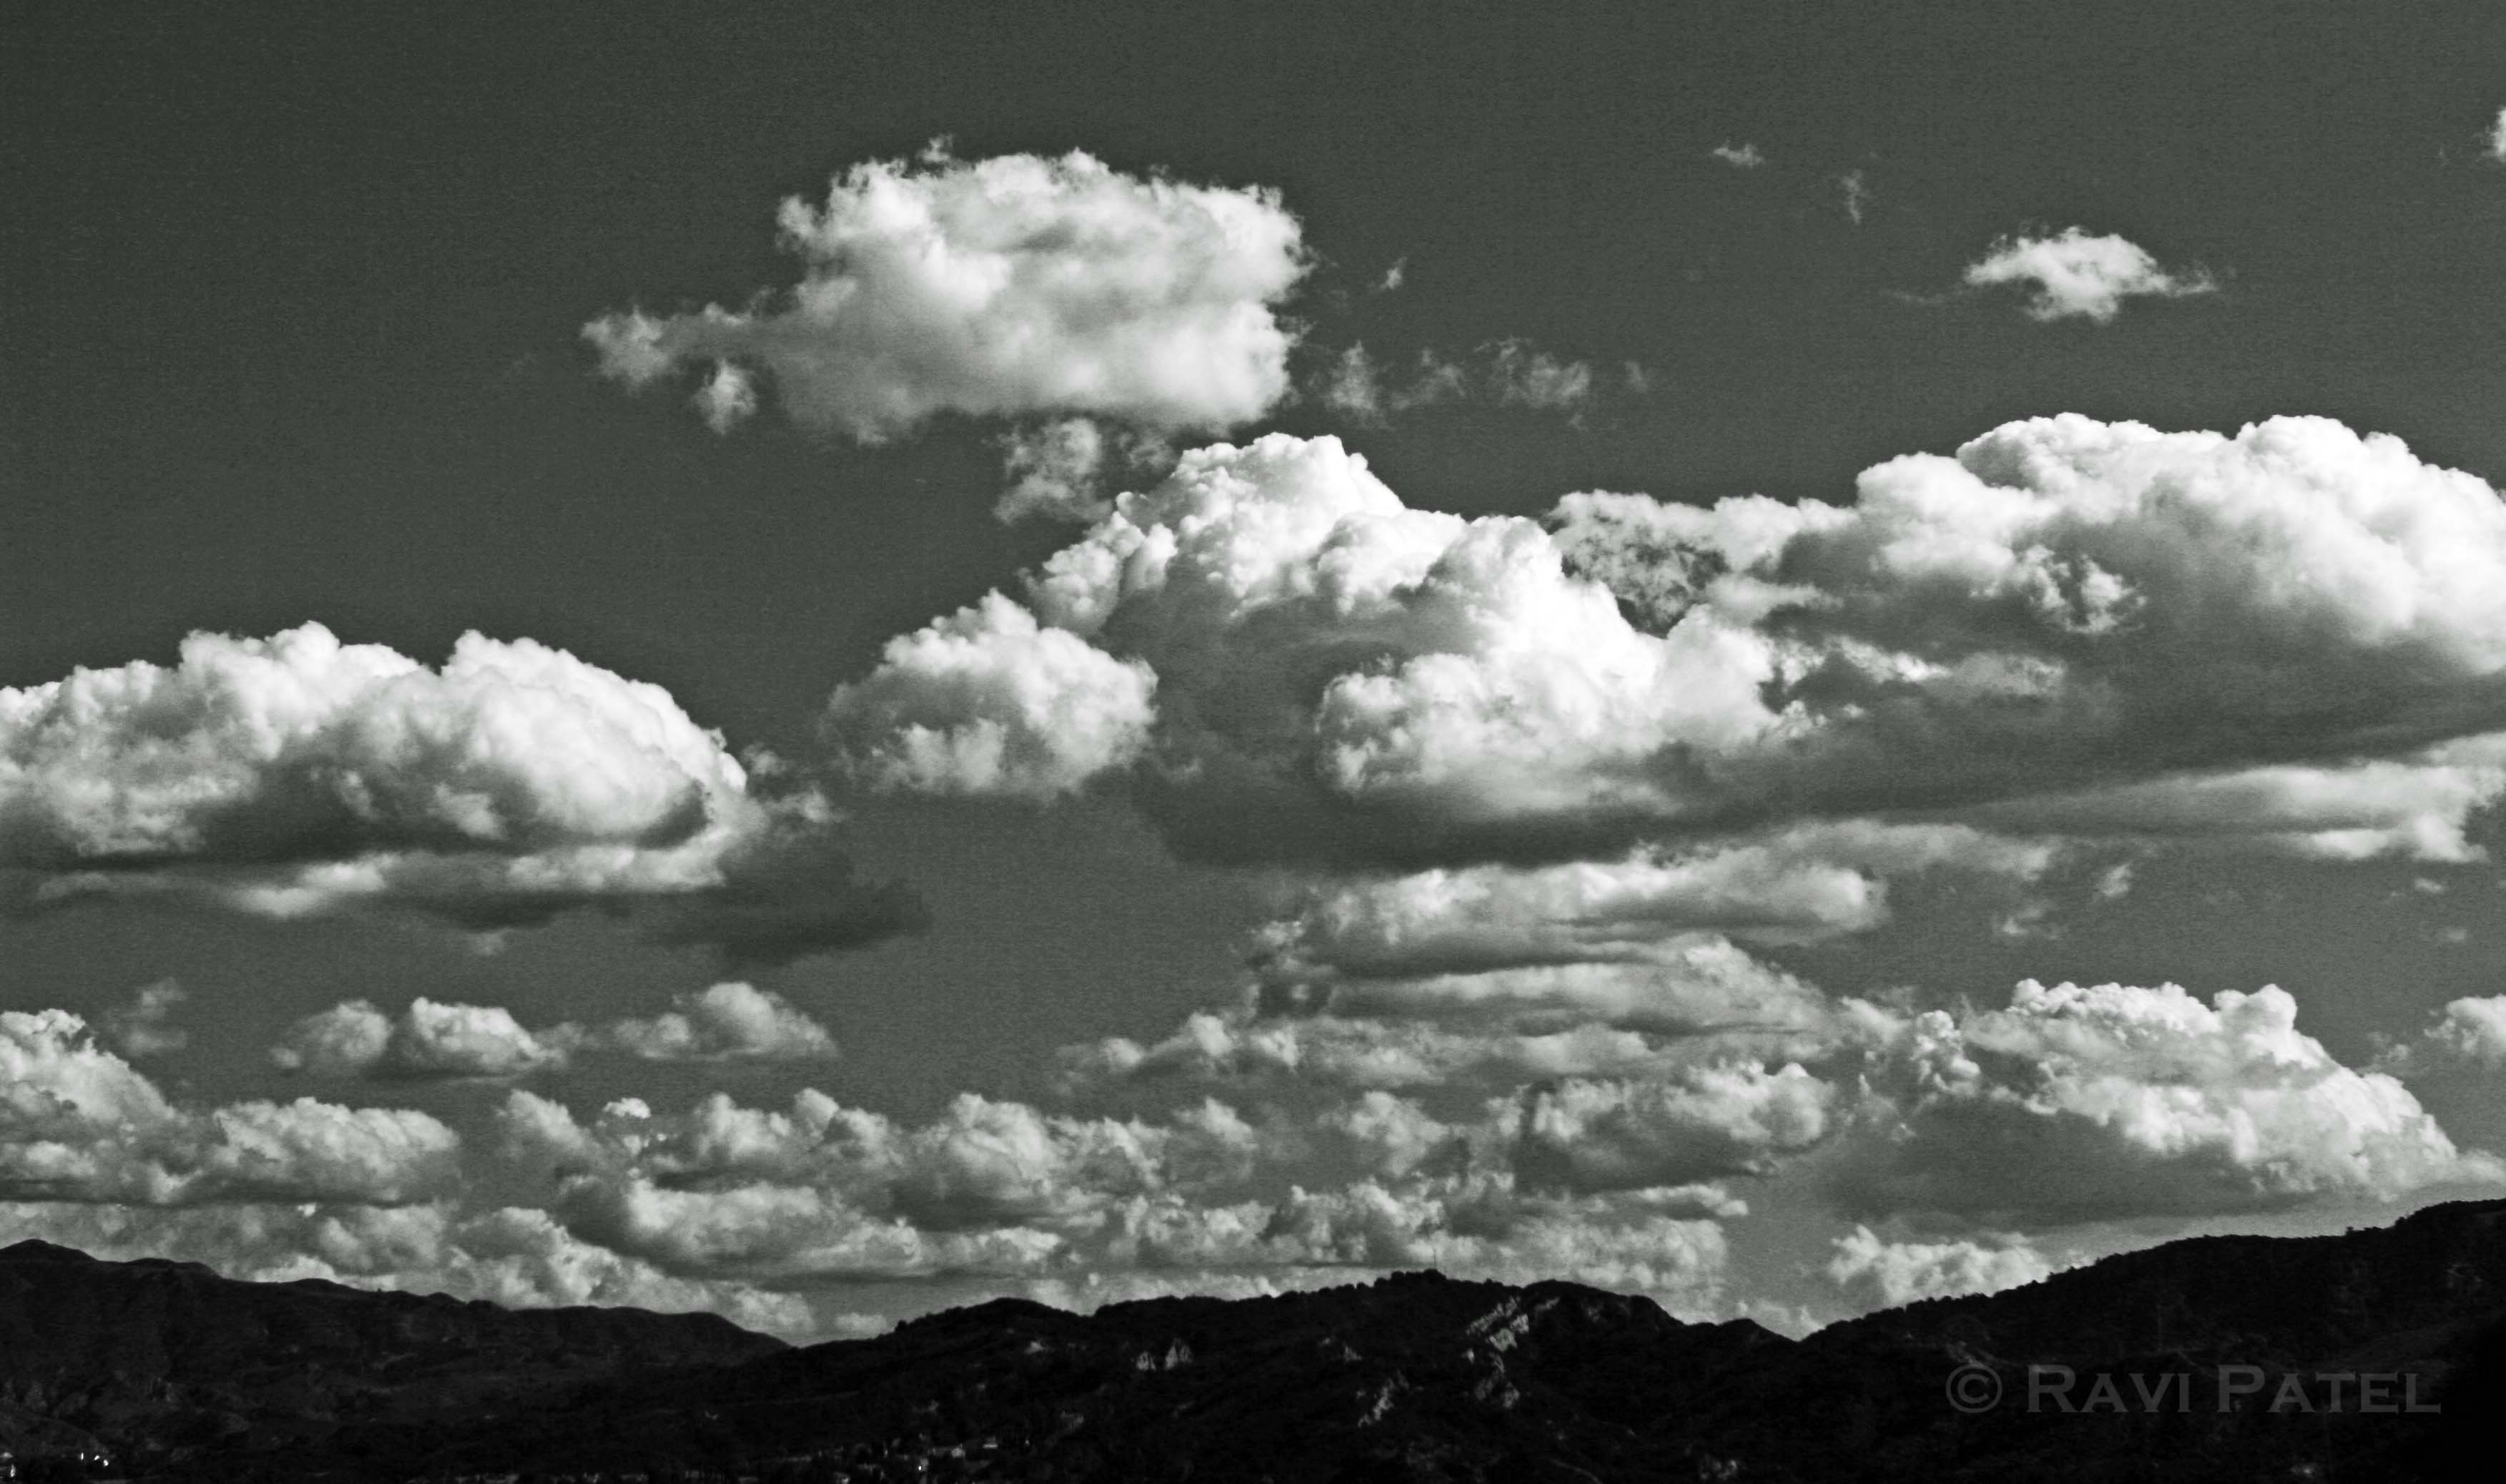 clouds in black and